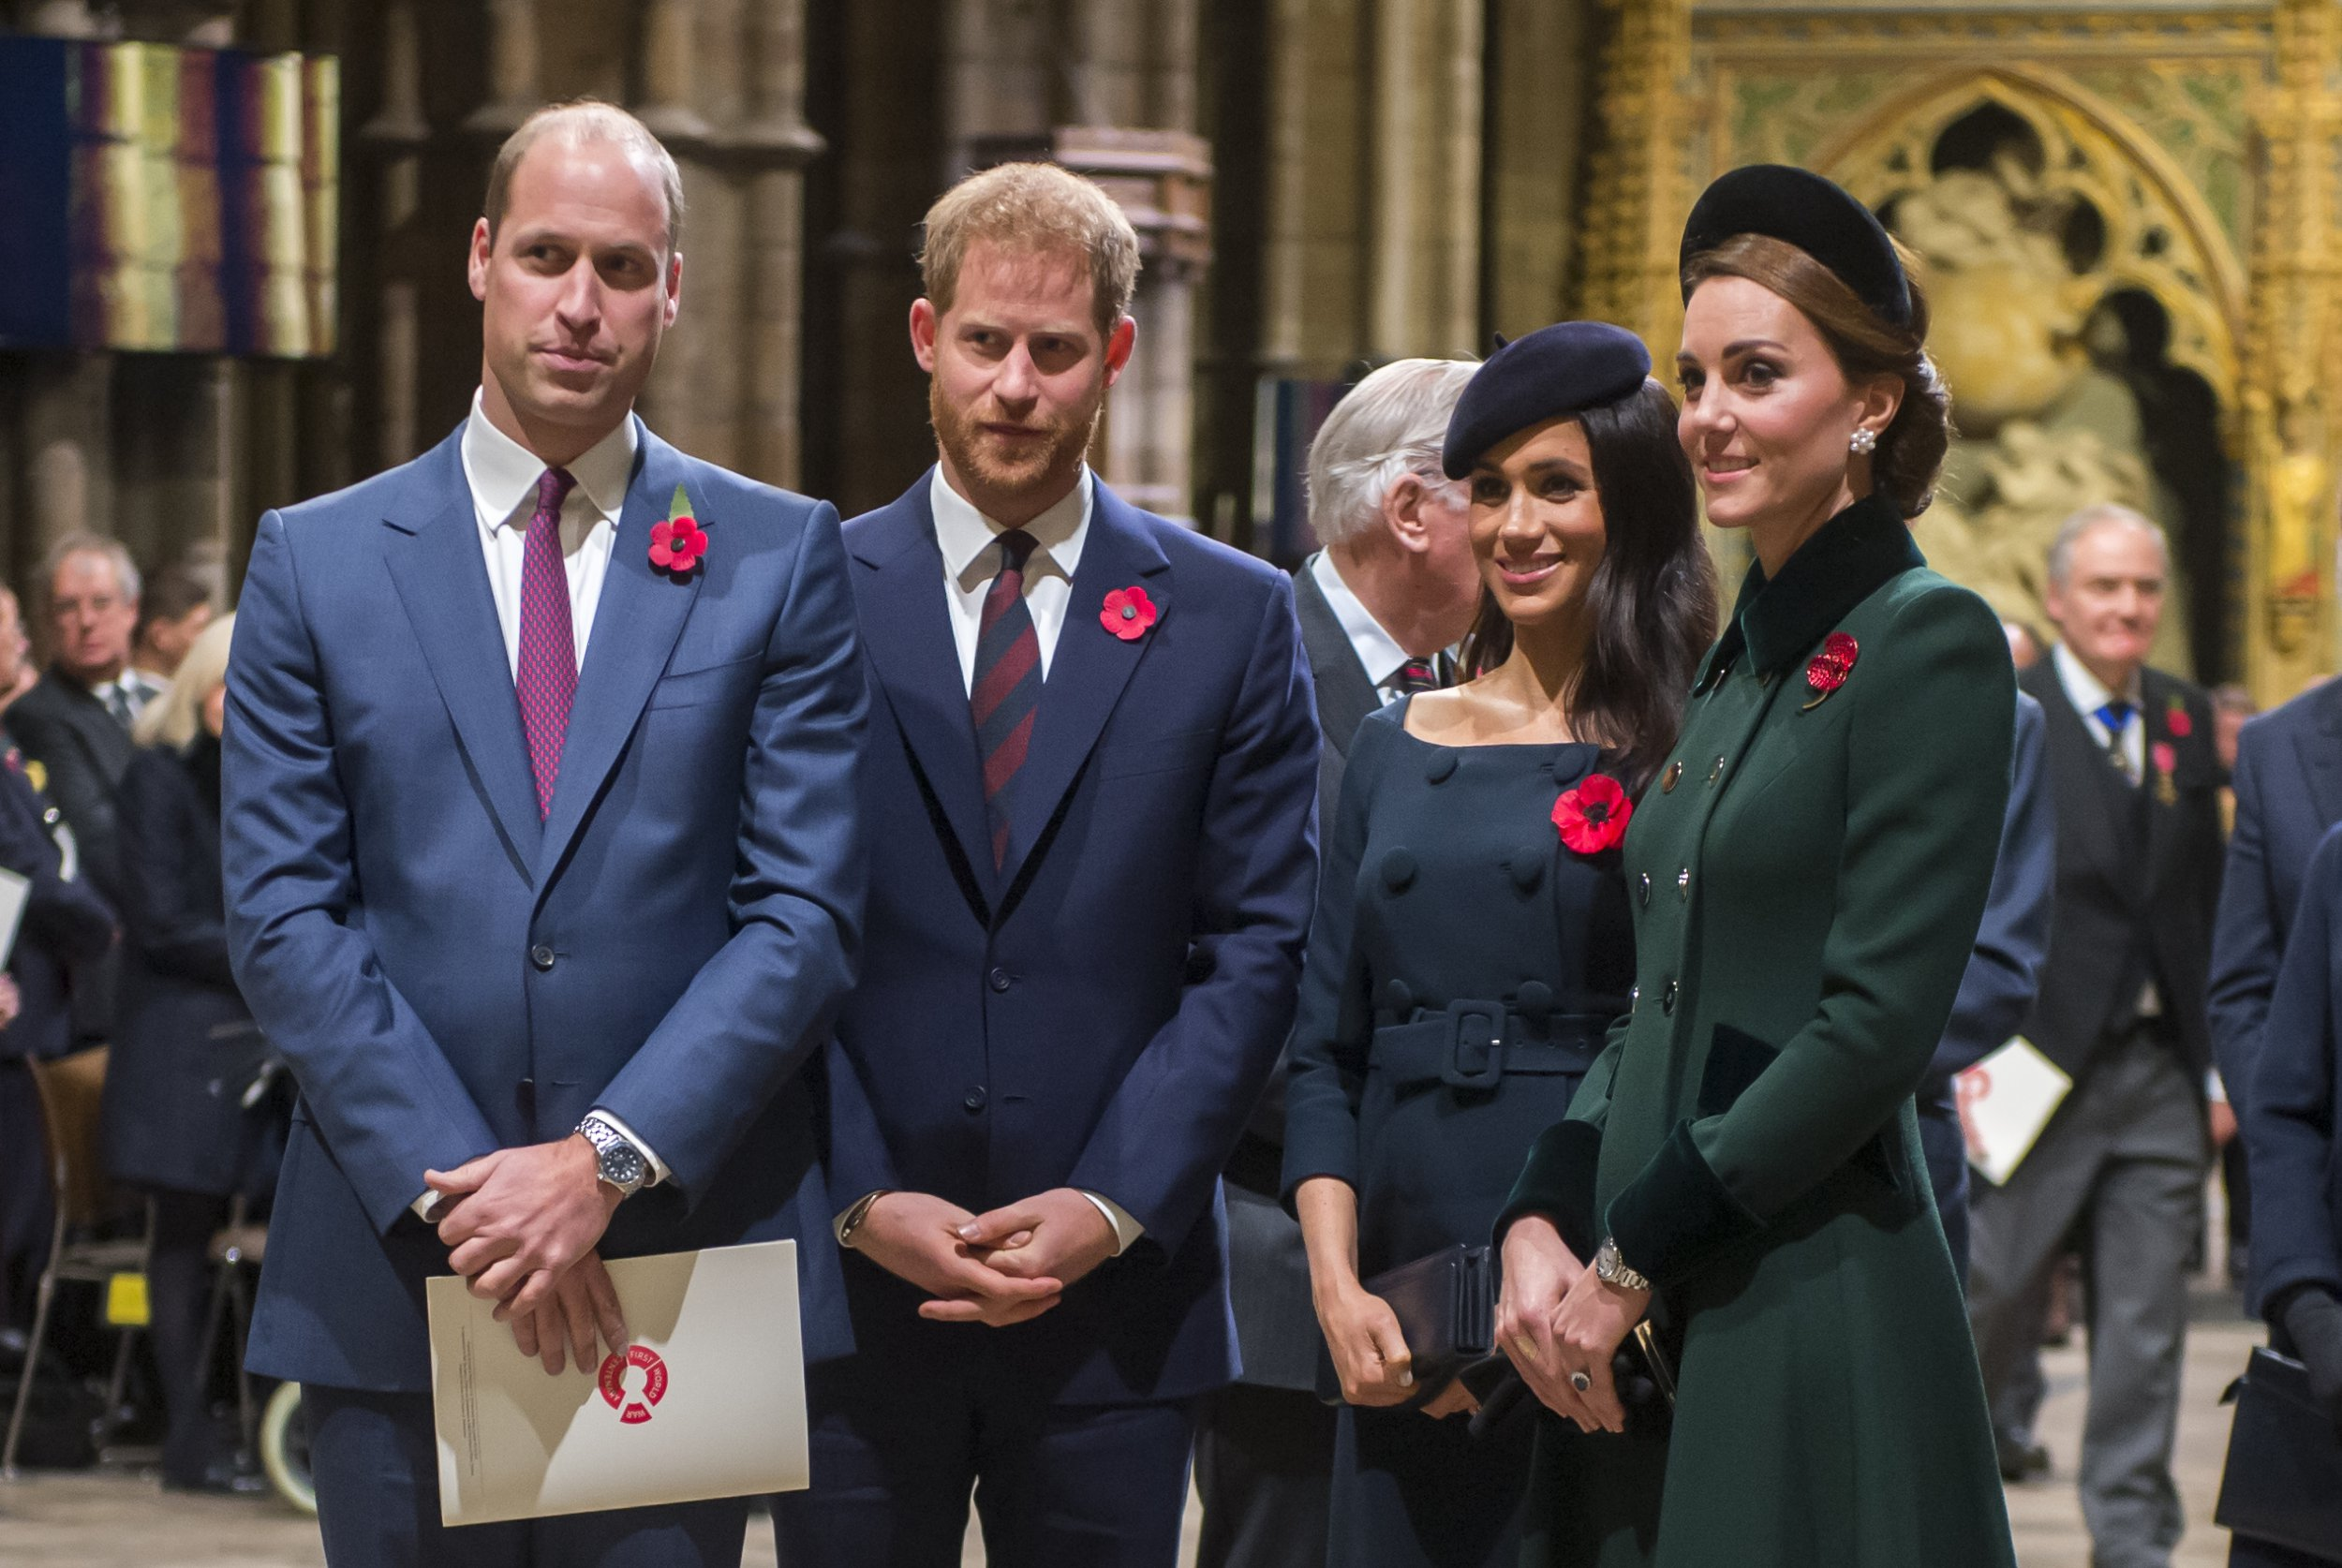 Meghan and Harry will spend Christmas Day with William and Kate despite 'rift'